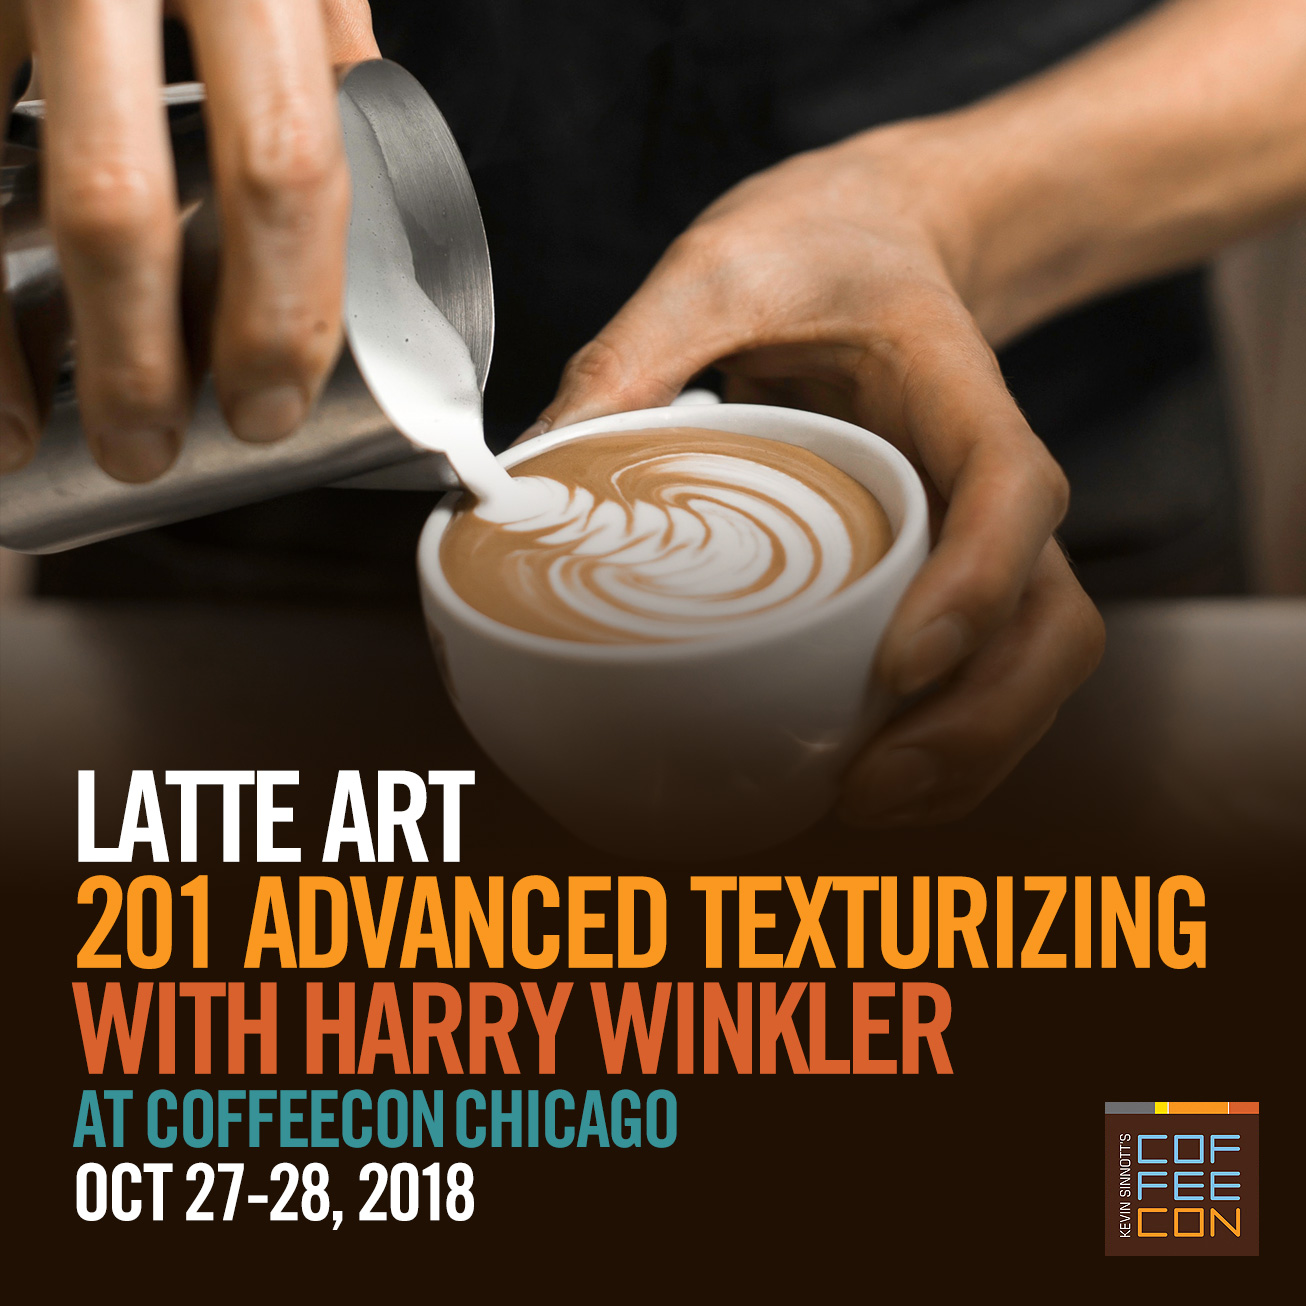 Latte Art 201 with Harry Winkler at CoffeeConChi 2018